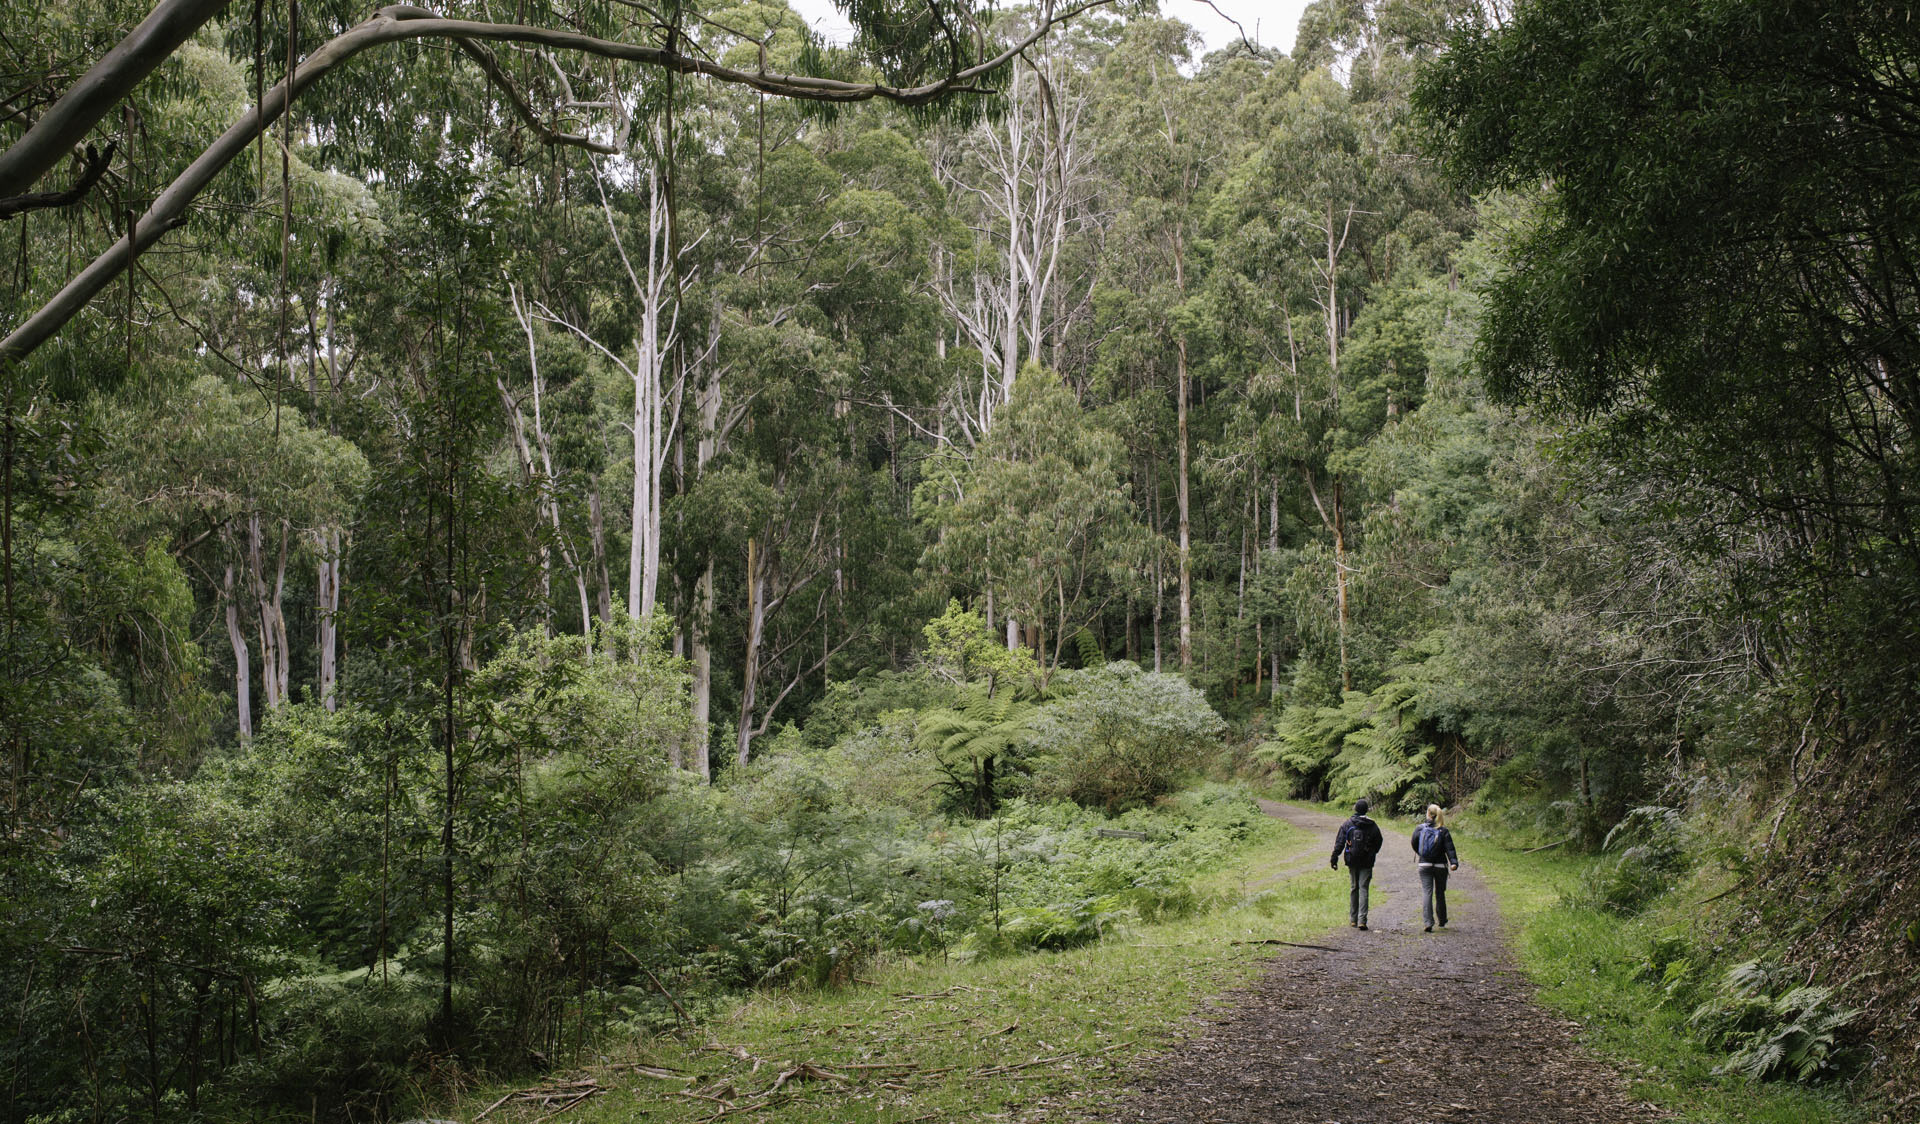 Two people walking along a wide path surrounded by trees and undergrowth at RJ Hamer Arboretum